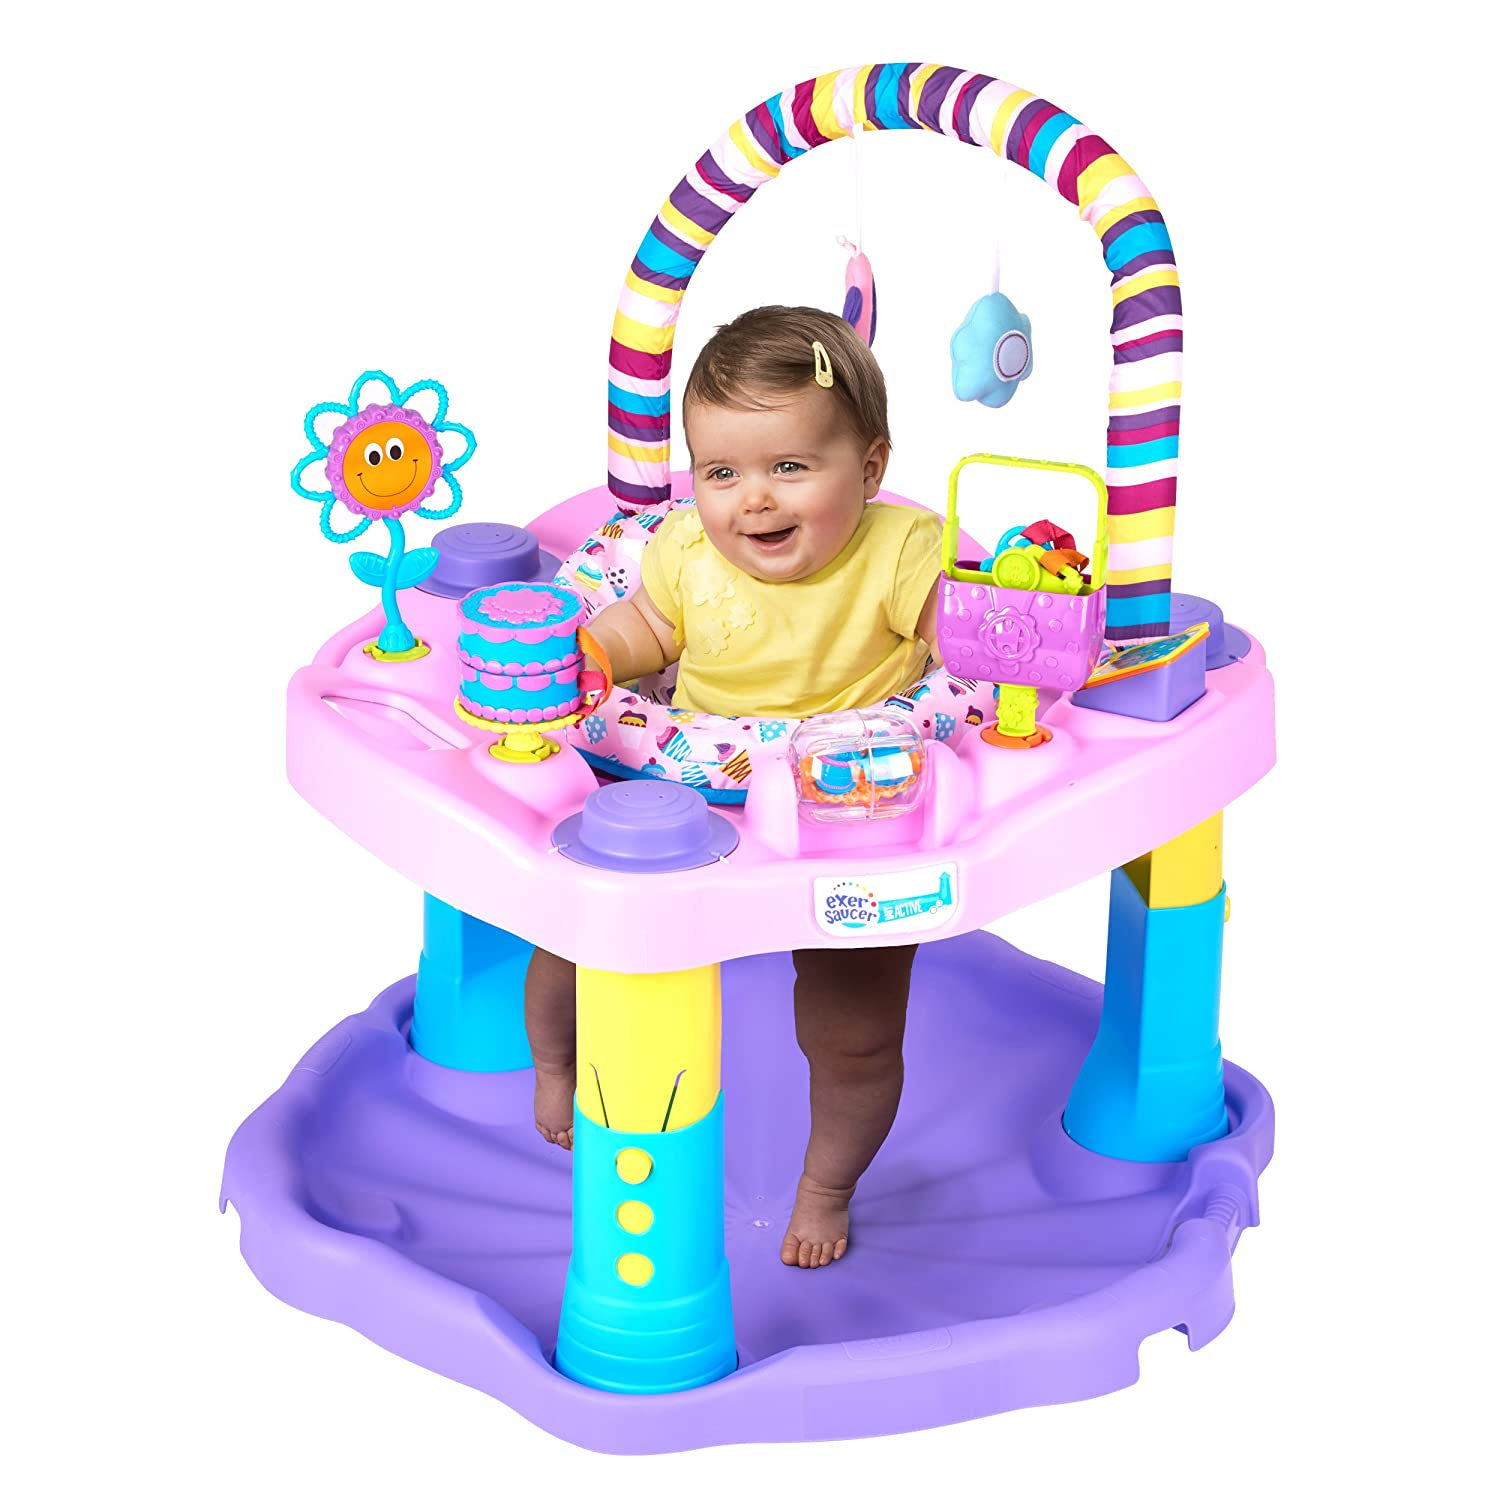 3795a0ce2 Amazon.com   Evenflo Exersaucer Bounce and Learn Sweet Tea